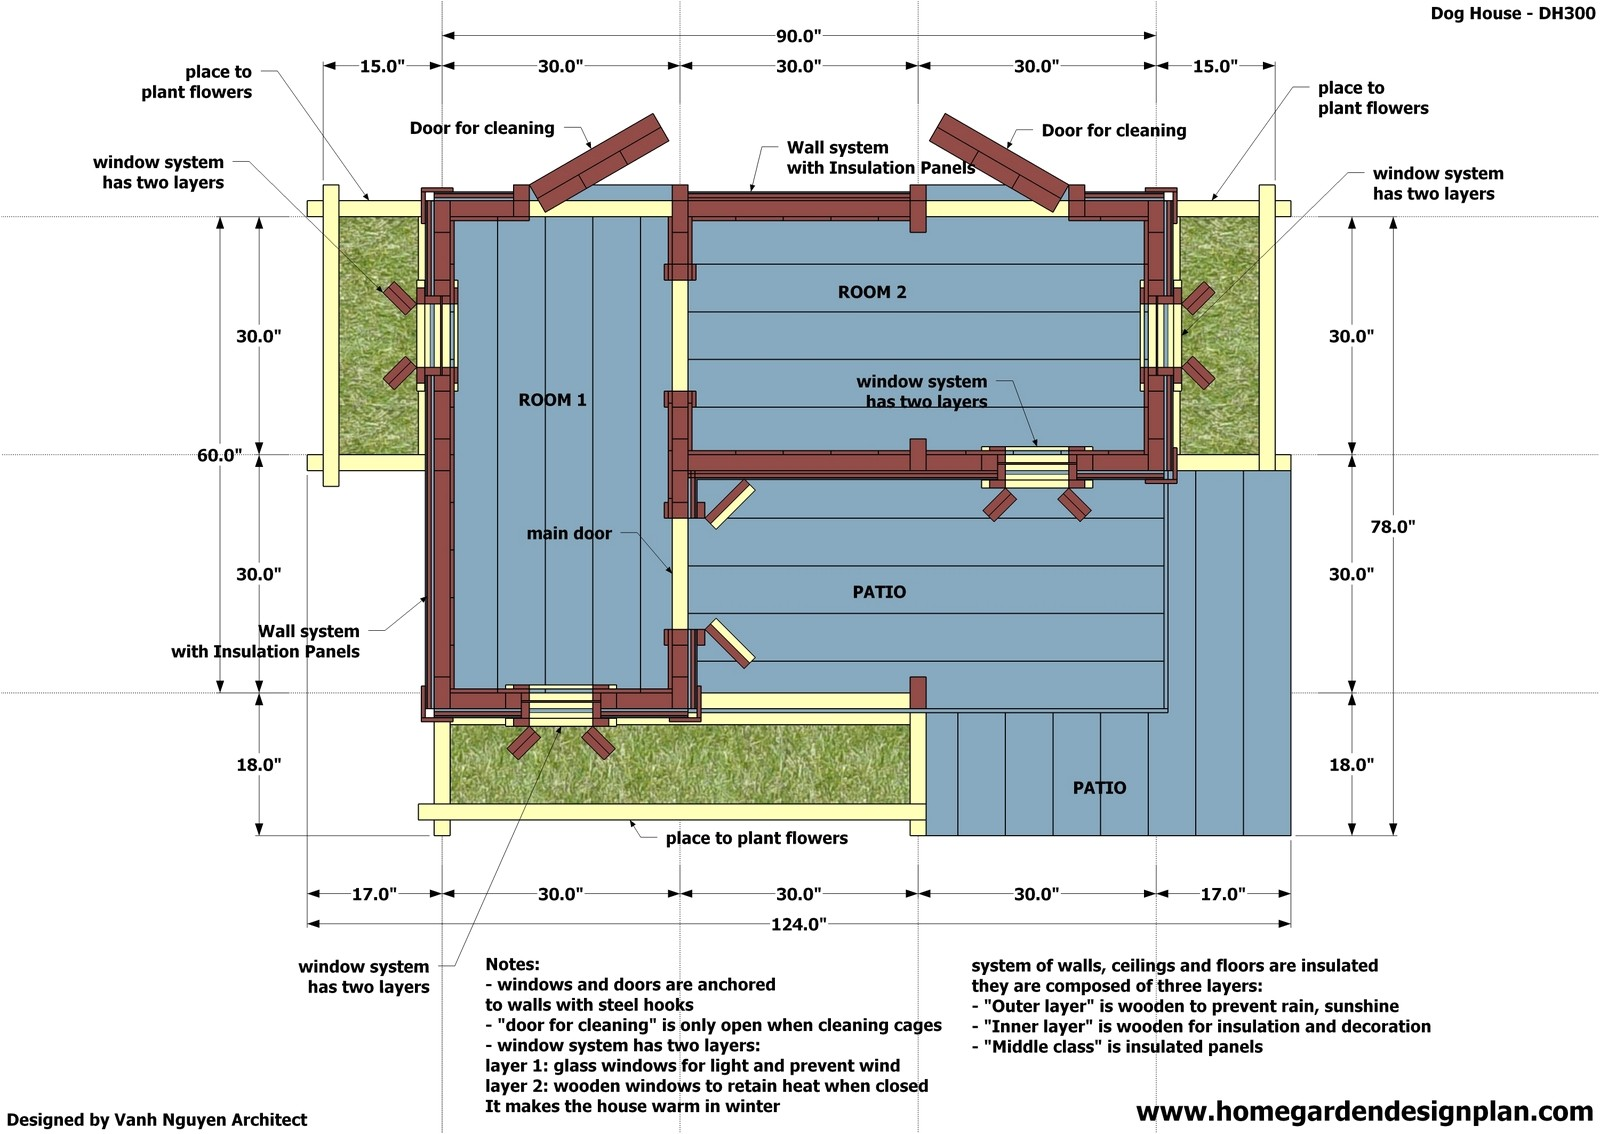 Dog House Construction Plans Shed Plans Free 12×16 2 Dog House Plans Free Wooden Plans